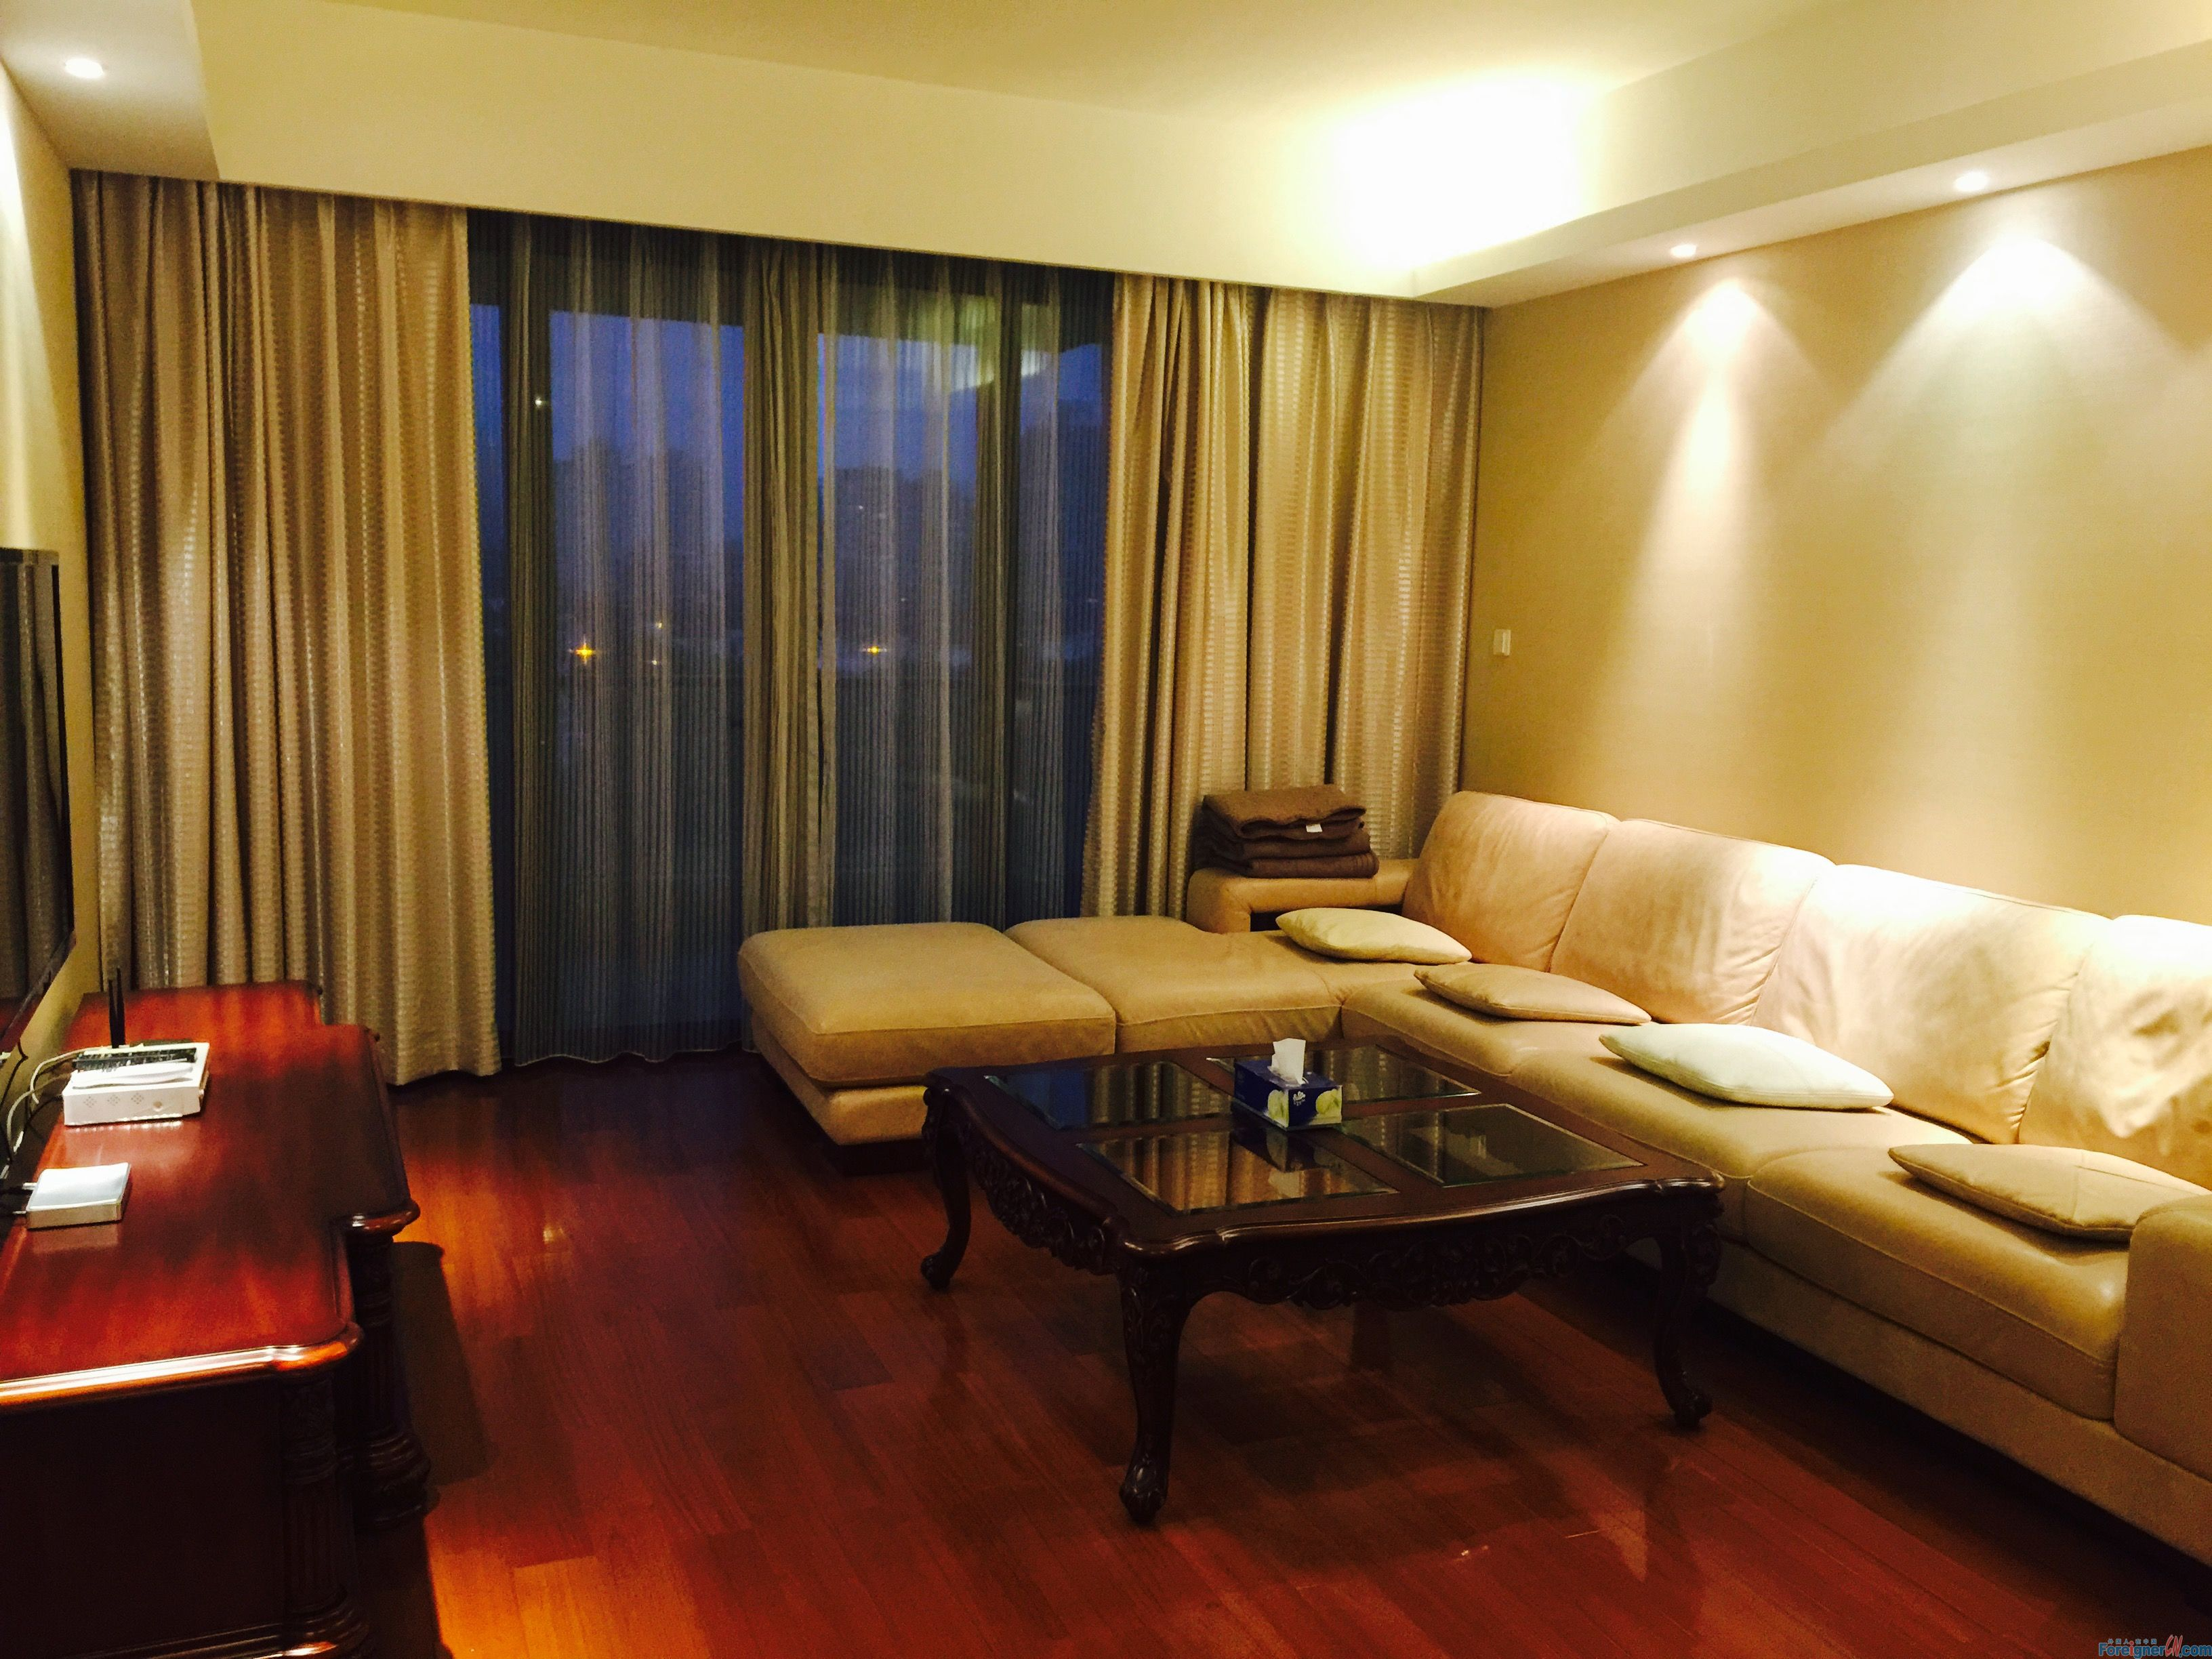 Marina cove,west lake, ligongdi area 4rooms,floor heating+central a/c+gym+pool+court,